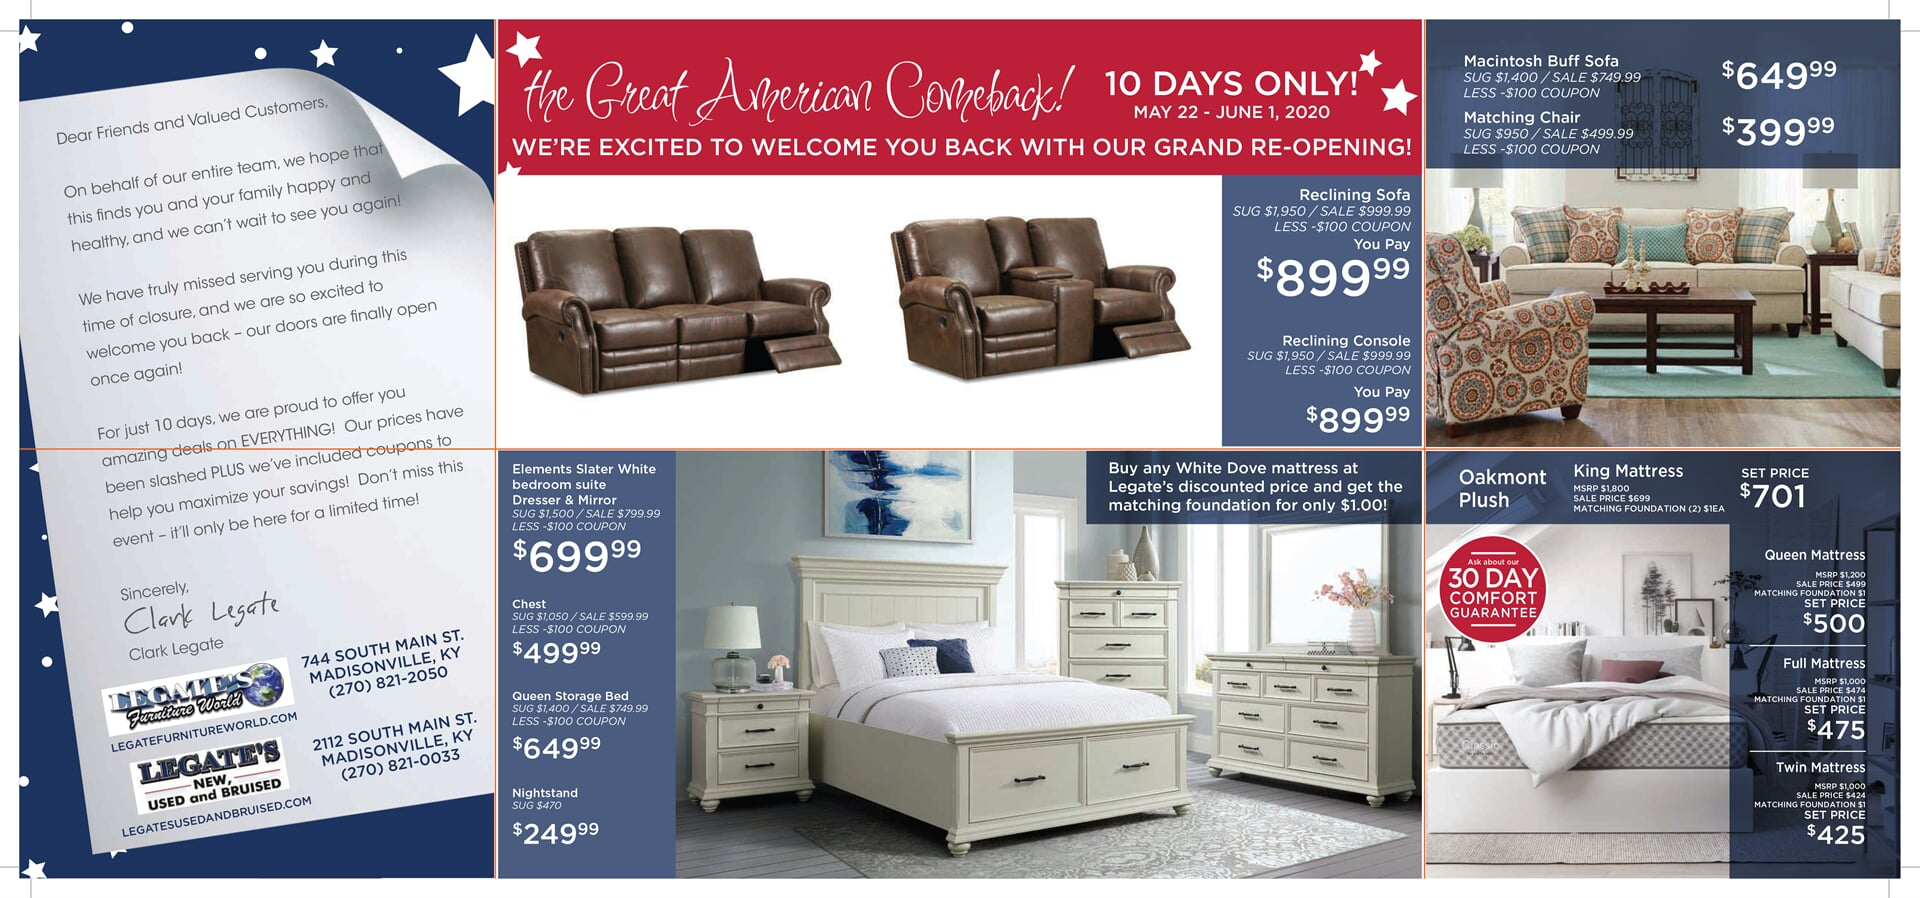 Presidents Day FURNITURE WORLD